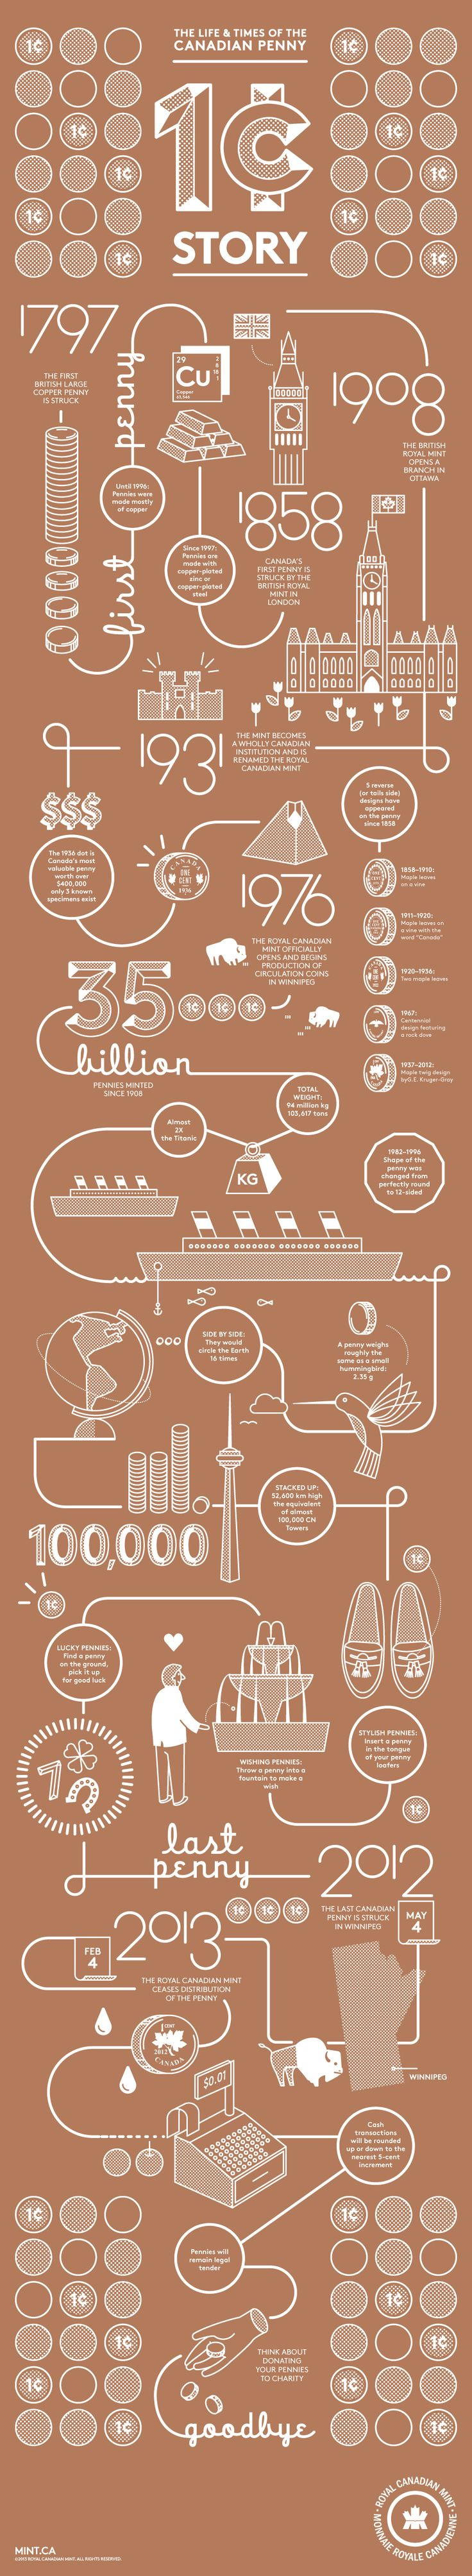 """""""Royal Canadian Mint has a pretty neat infographic tracing the history of the Canadian penny.""""  and some other neat things Canadians are doing to re-purpose the penny."""